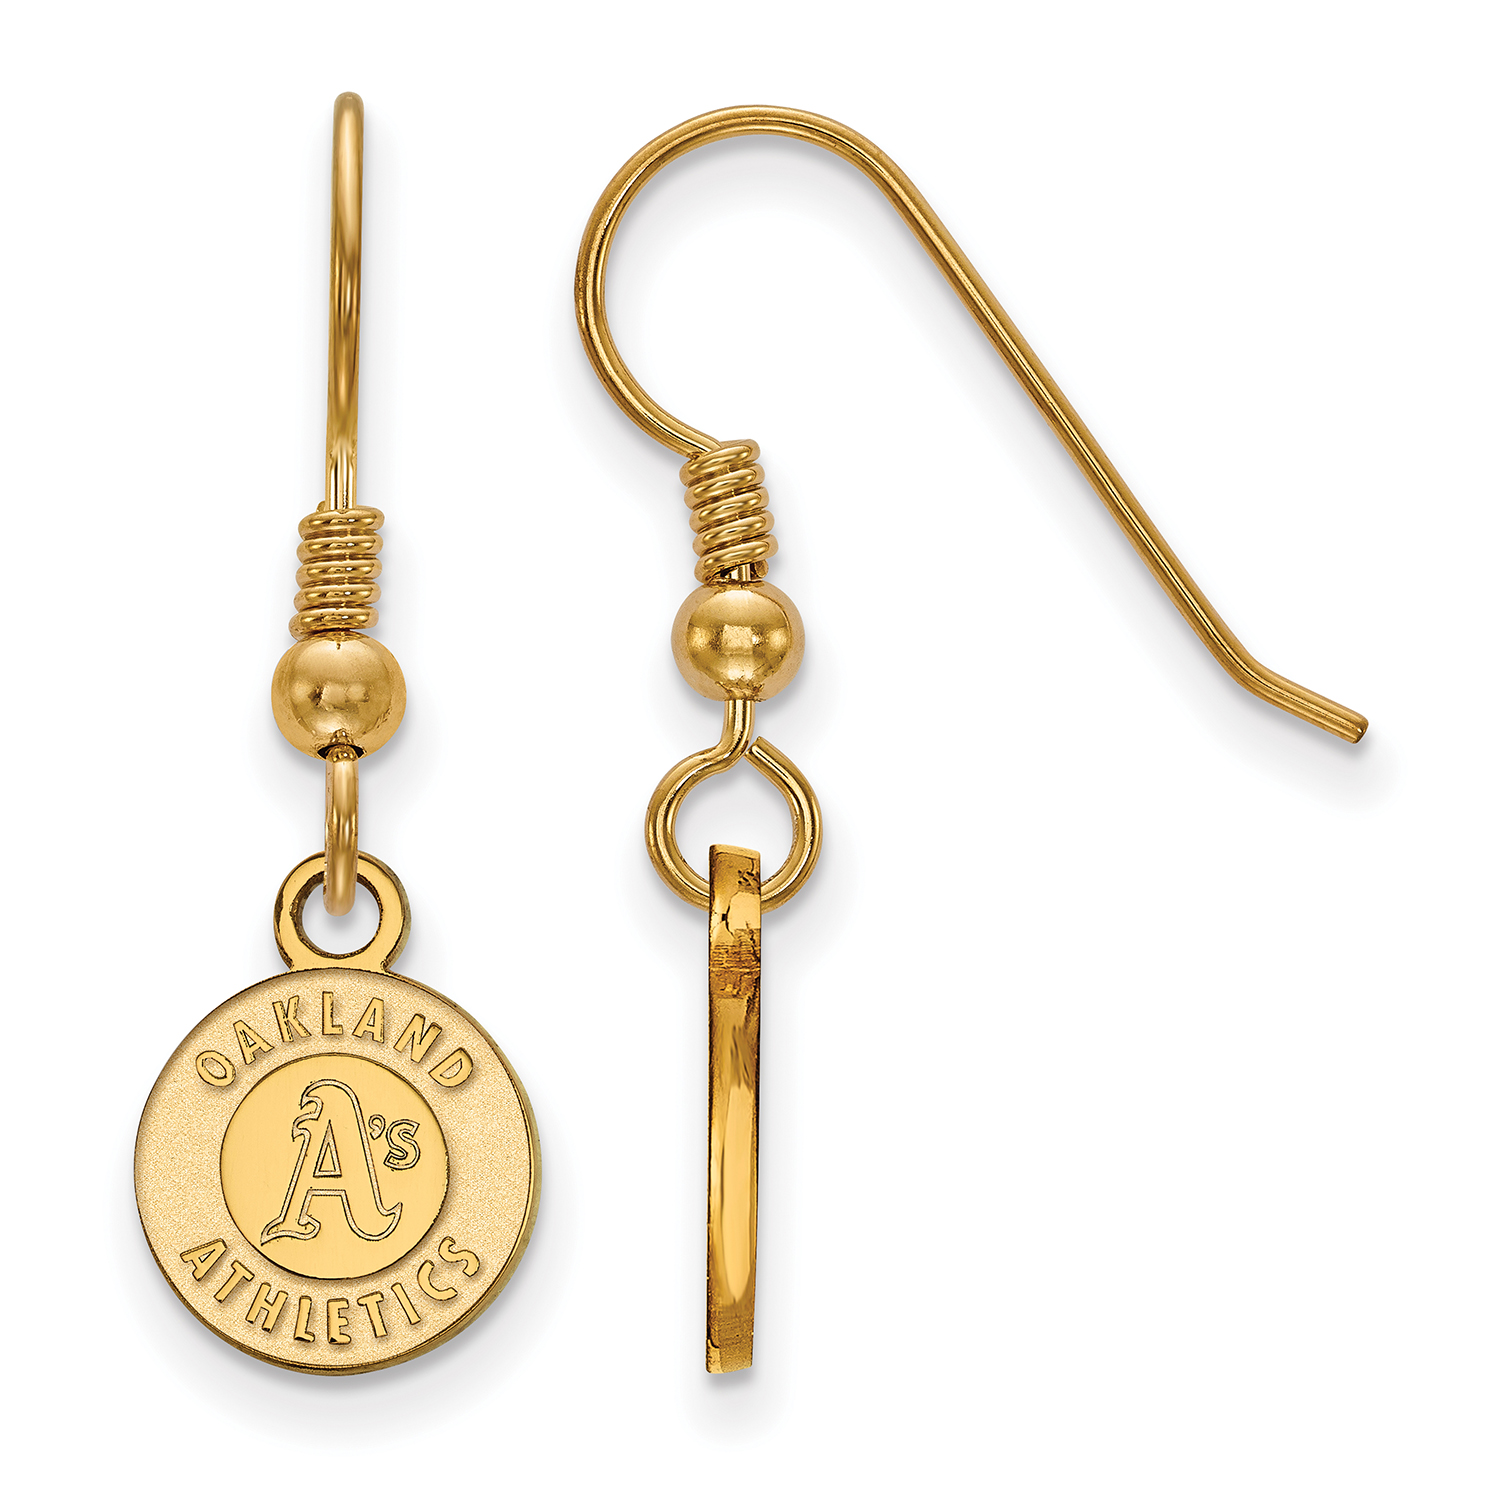 Oakland Athletics Women's Gold-Plated Sterling Silver Extra-Small Dangle Earrings - No Size